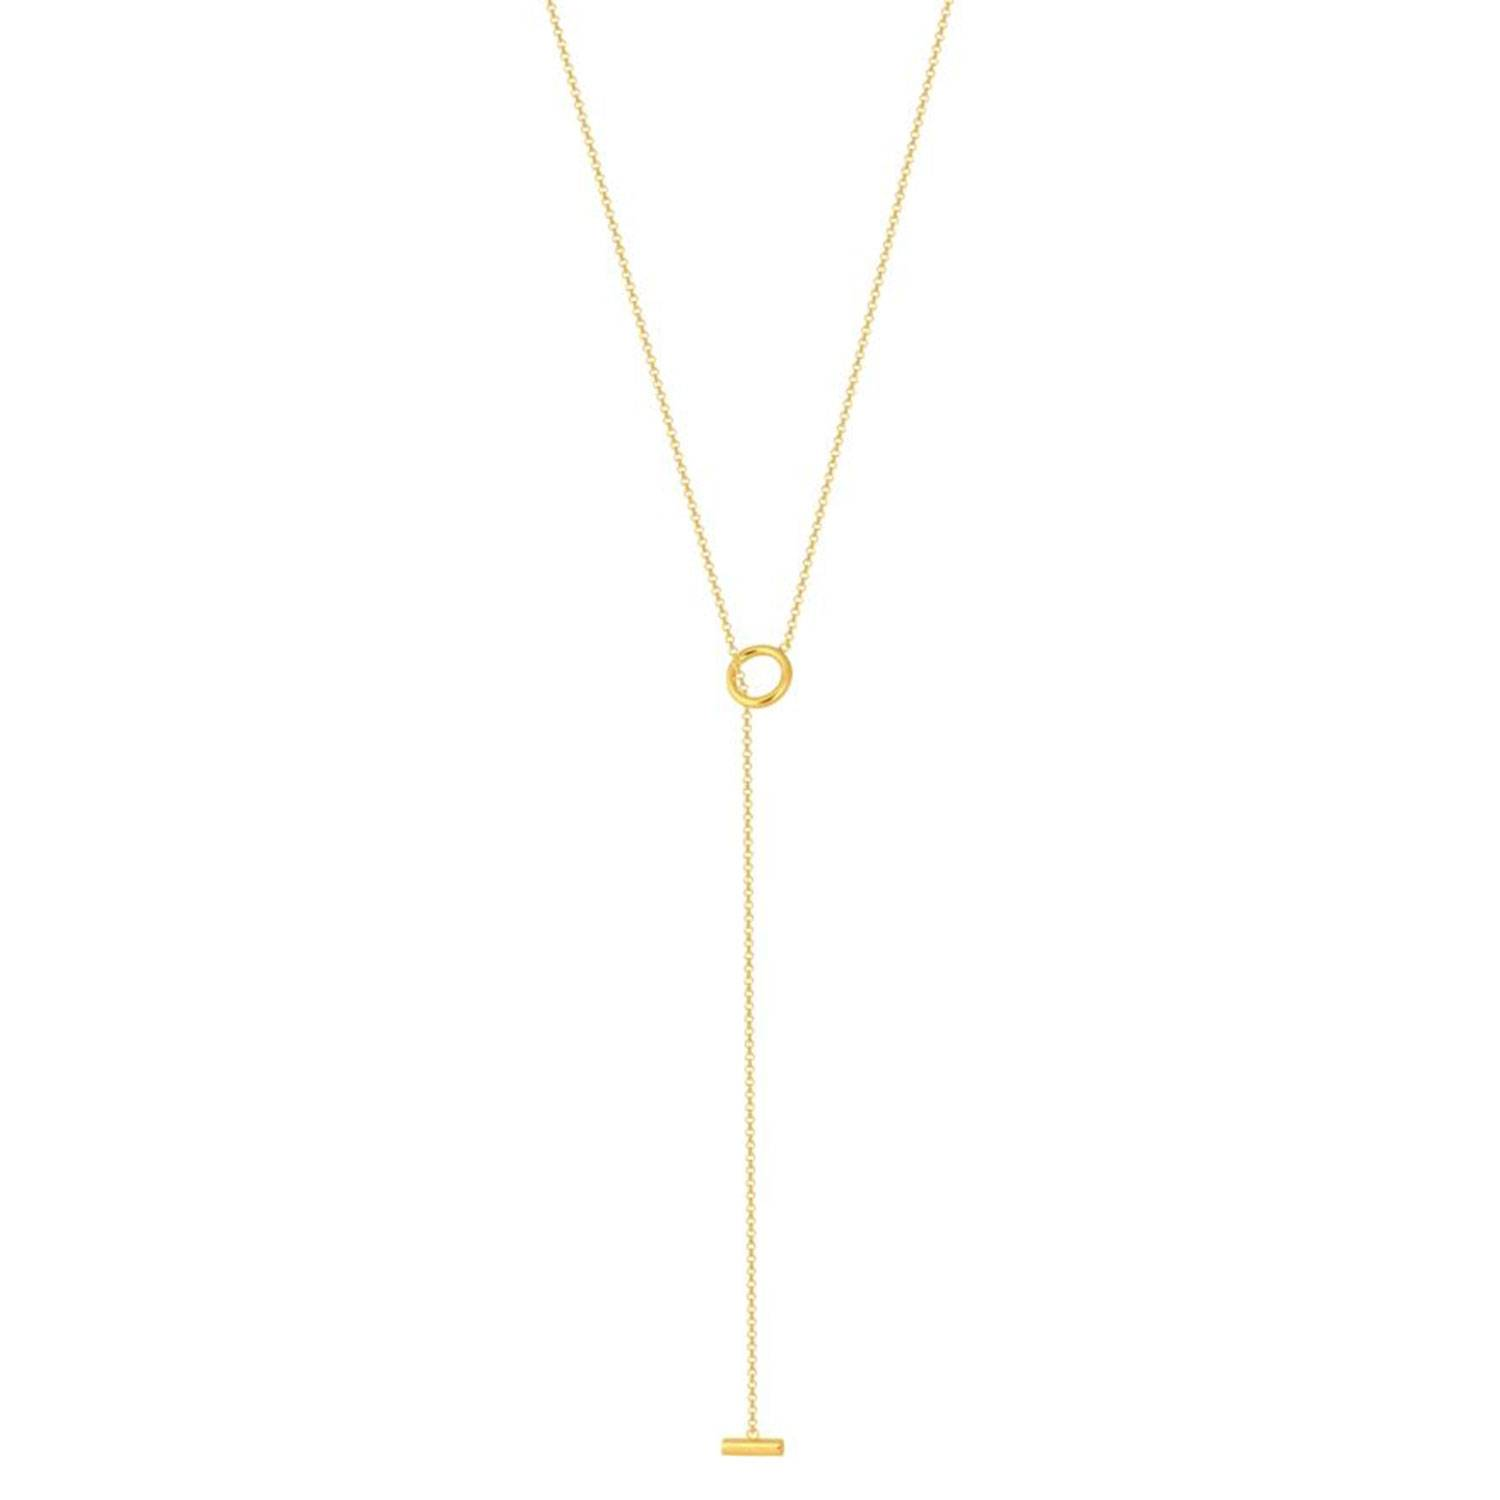 Sophie by Sophie Circlebar Necklace